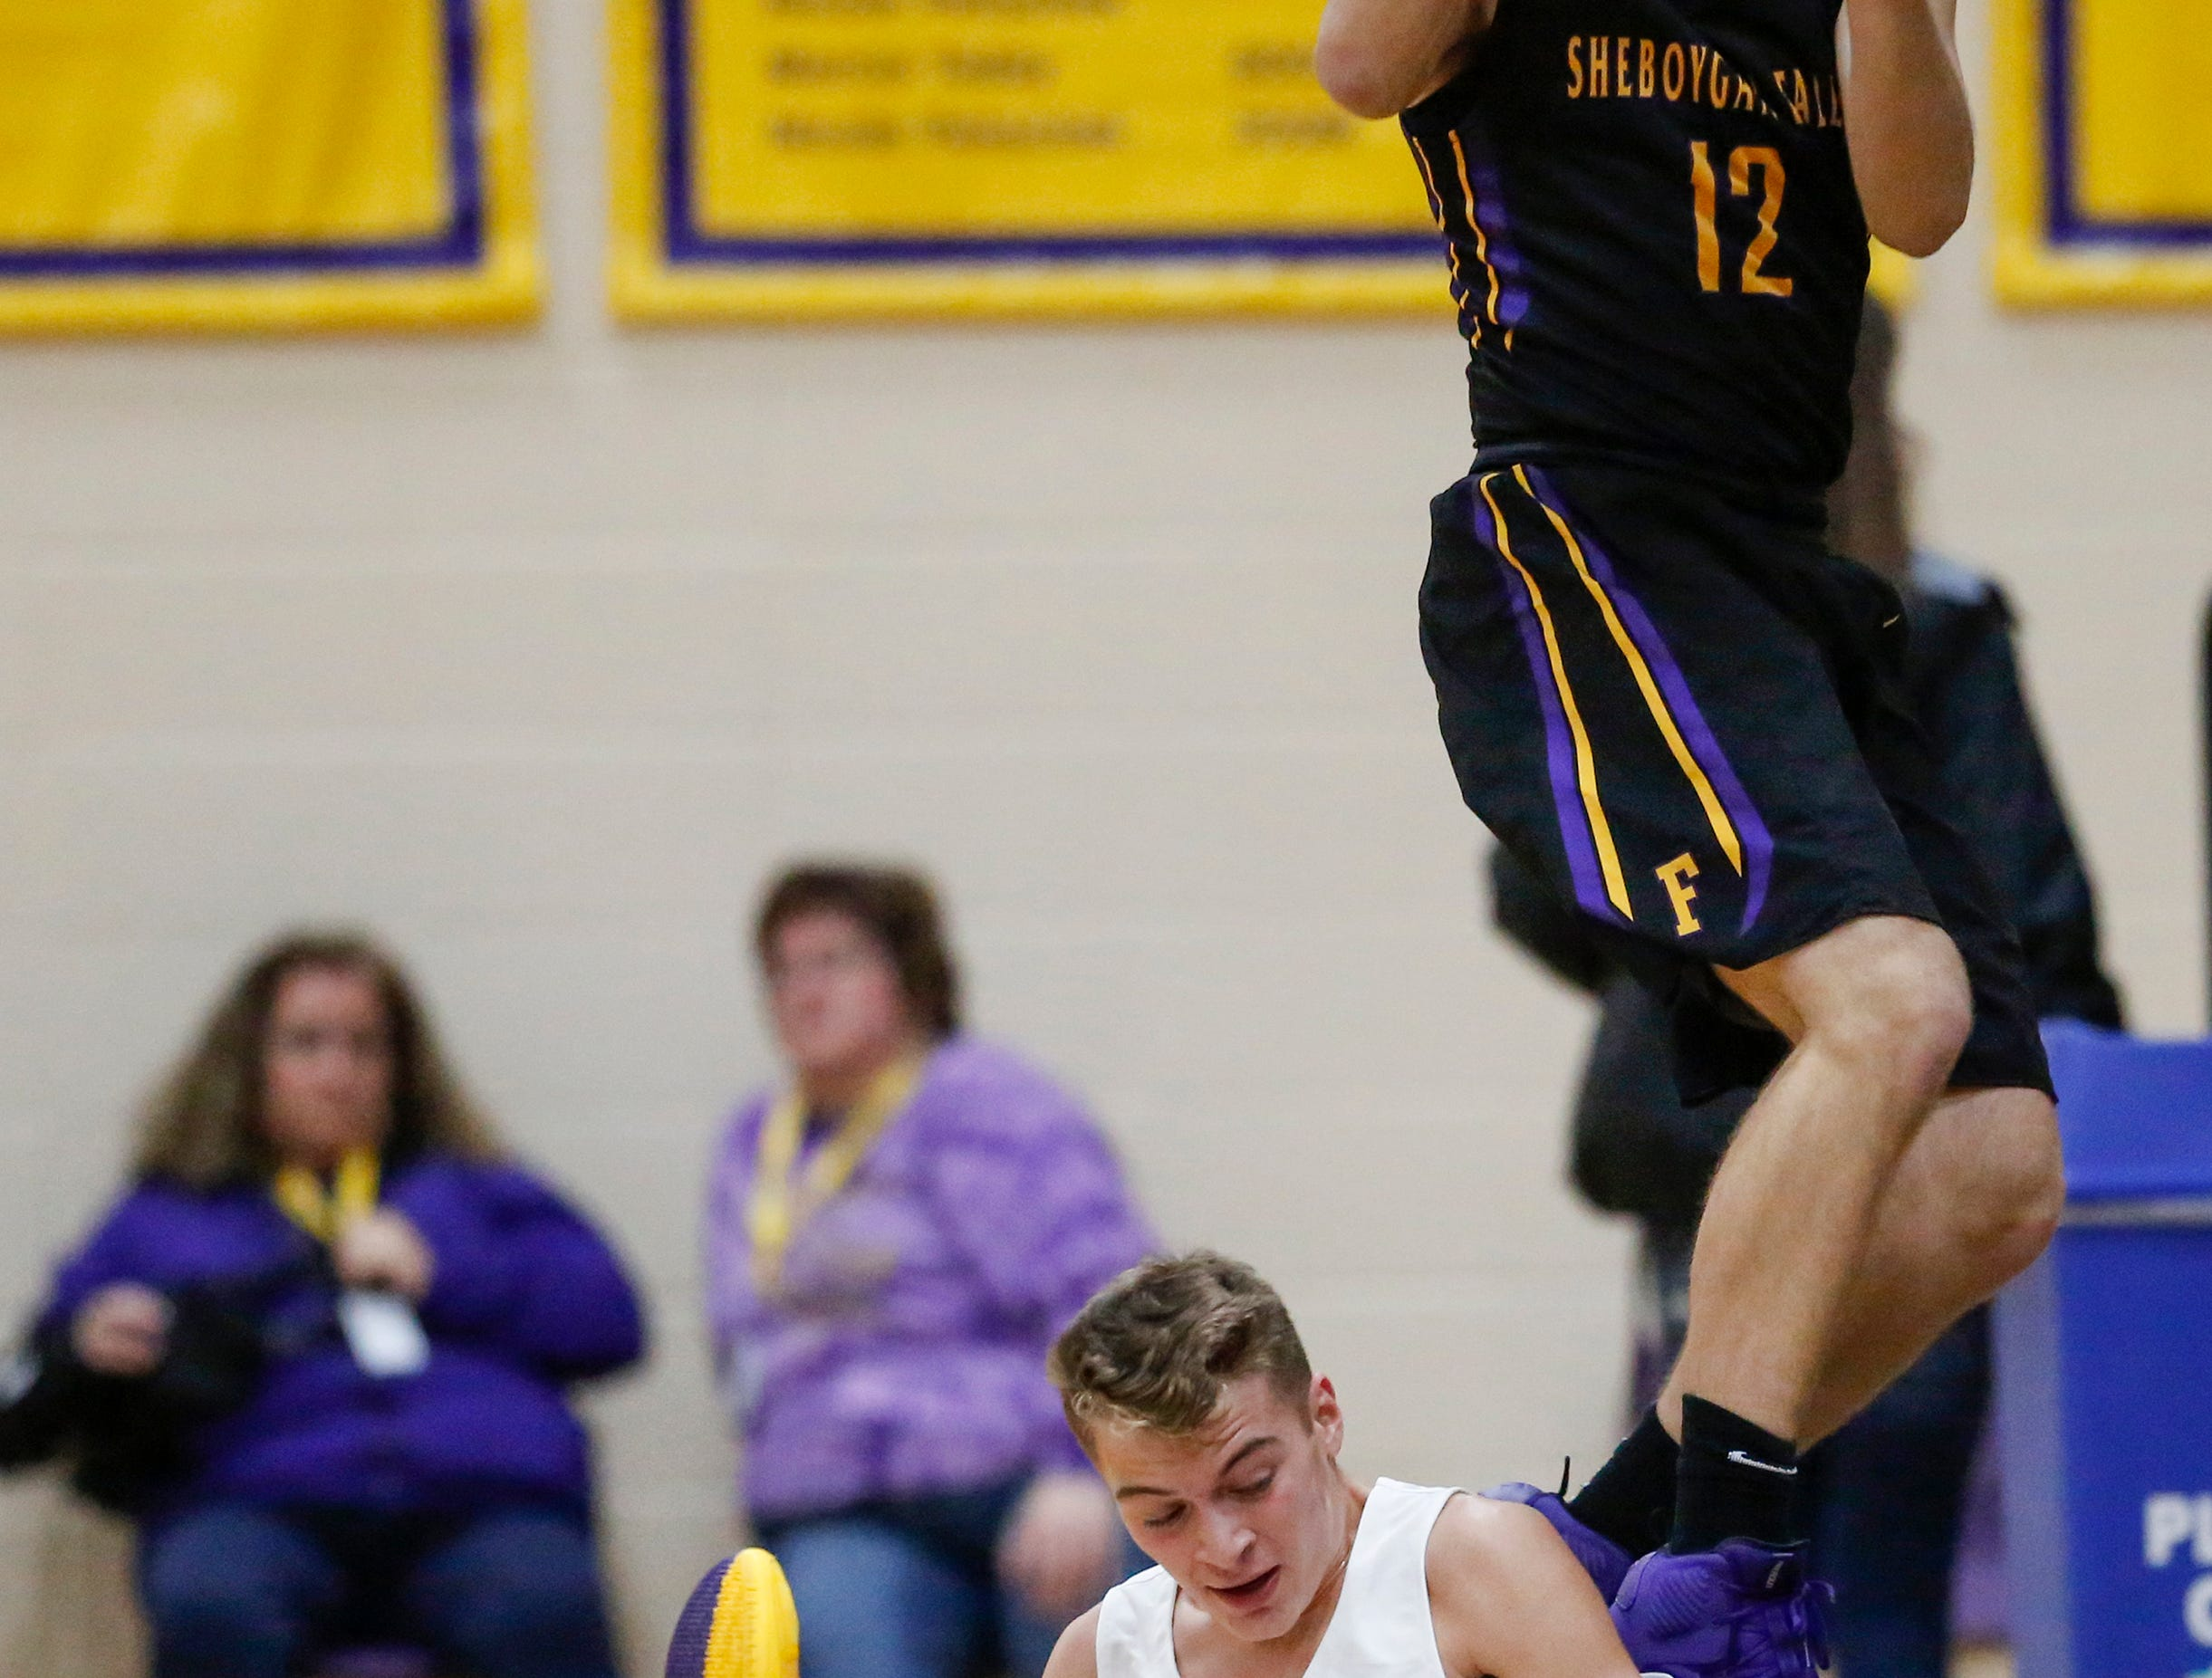 Sheboygan Falls' Langdon Thiel leaps over Two Rivers' Alexander Klein for a loose ball during an Eastern Wisconsin Conference game at Two Rivers High School Tuesday, December 4, 2018, in Two Rivers, Wis. Joshua Clark/USA TODAY NETWORK-Wisconsin